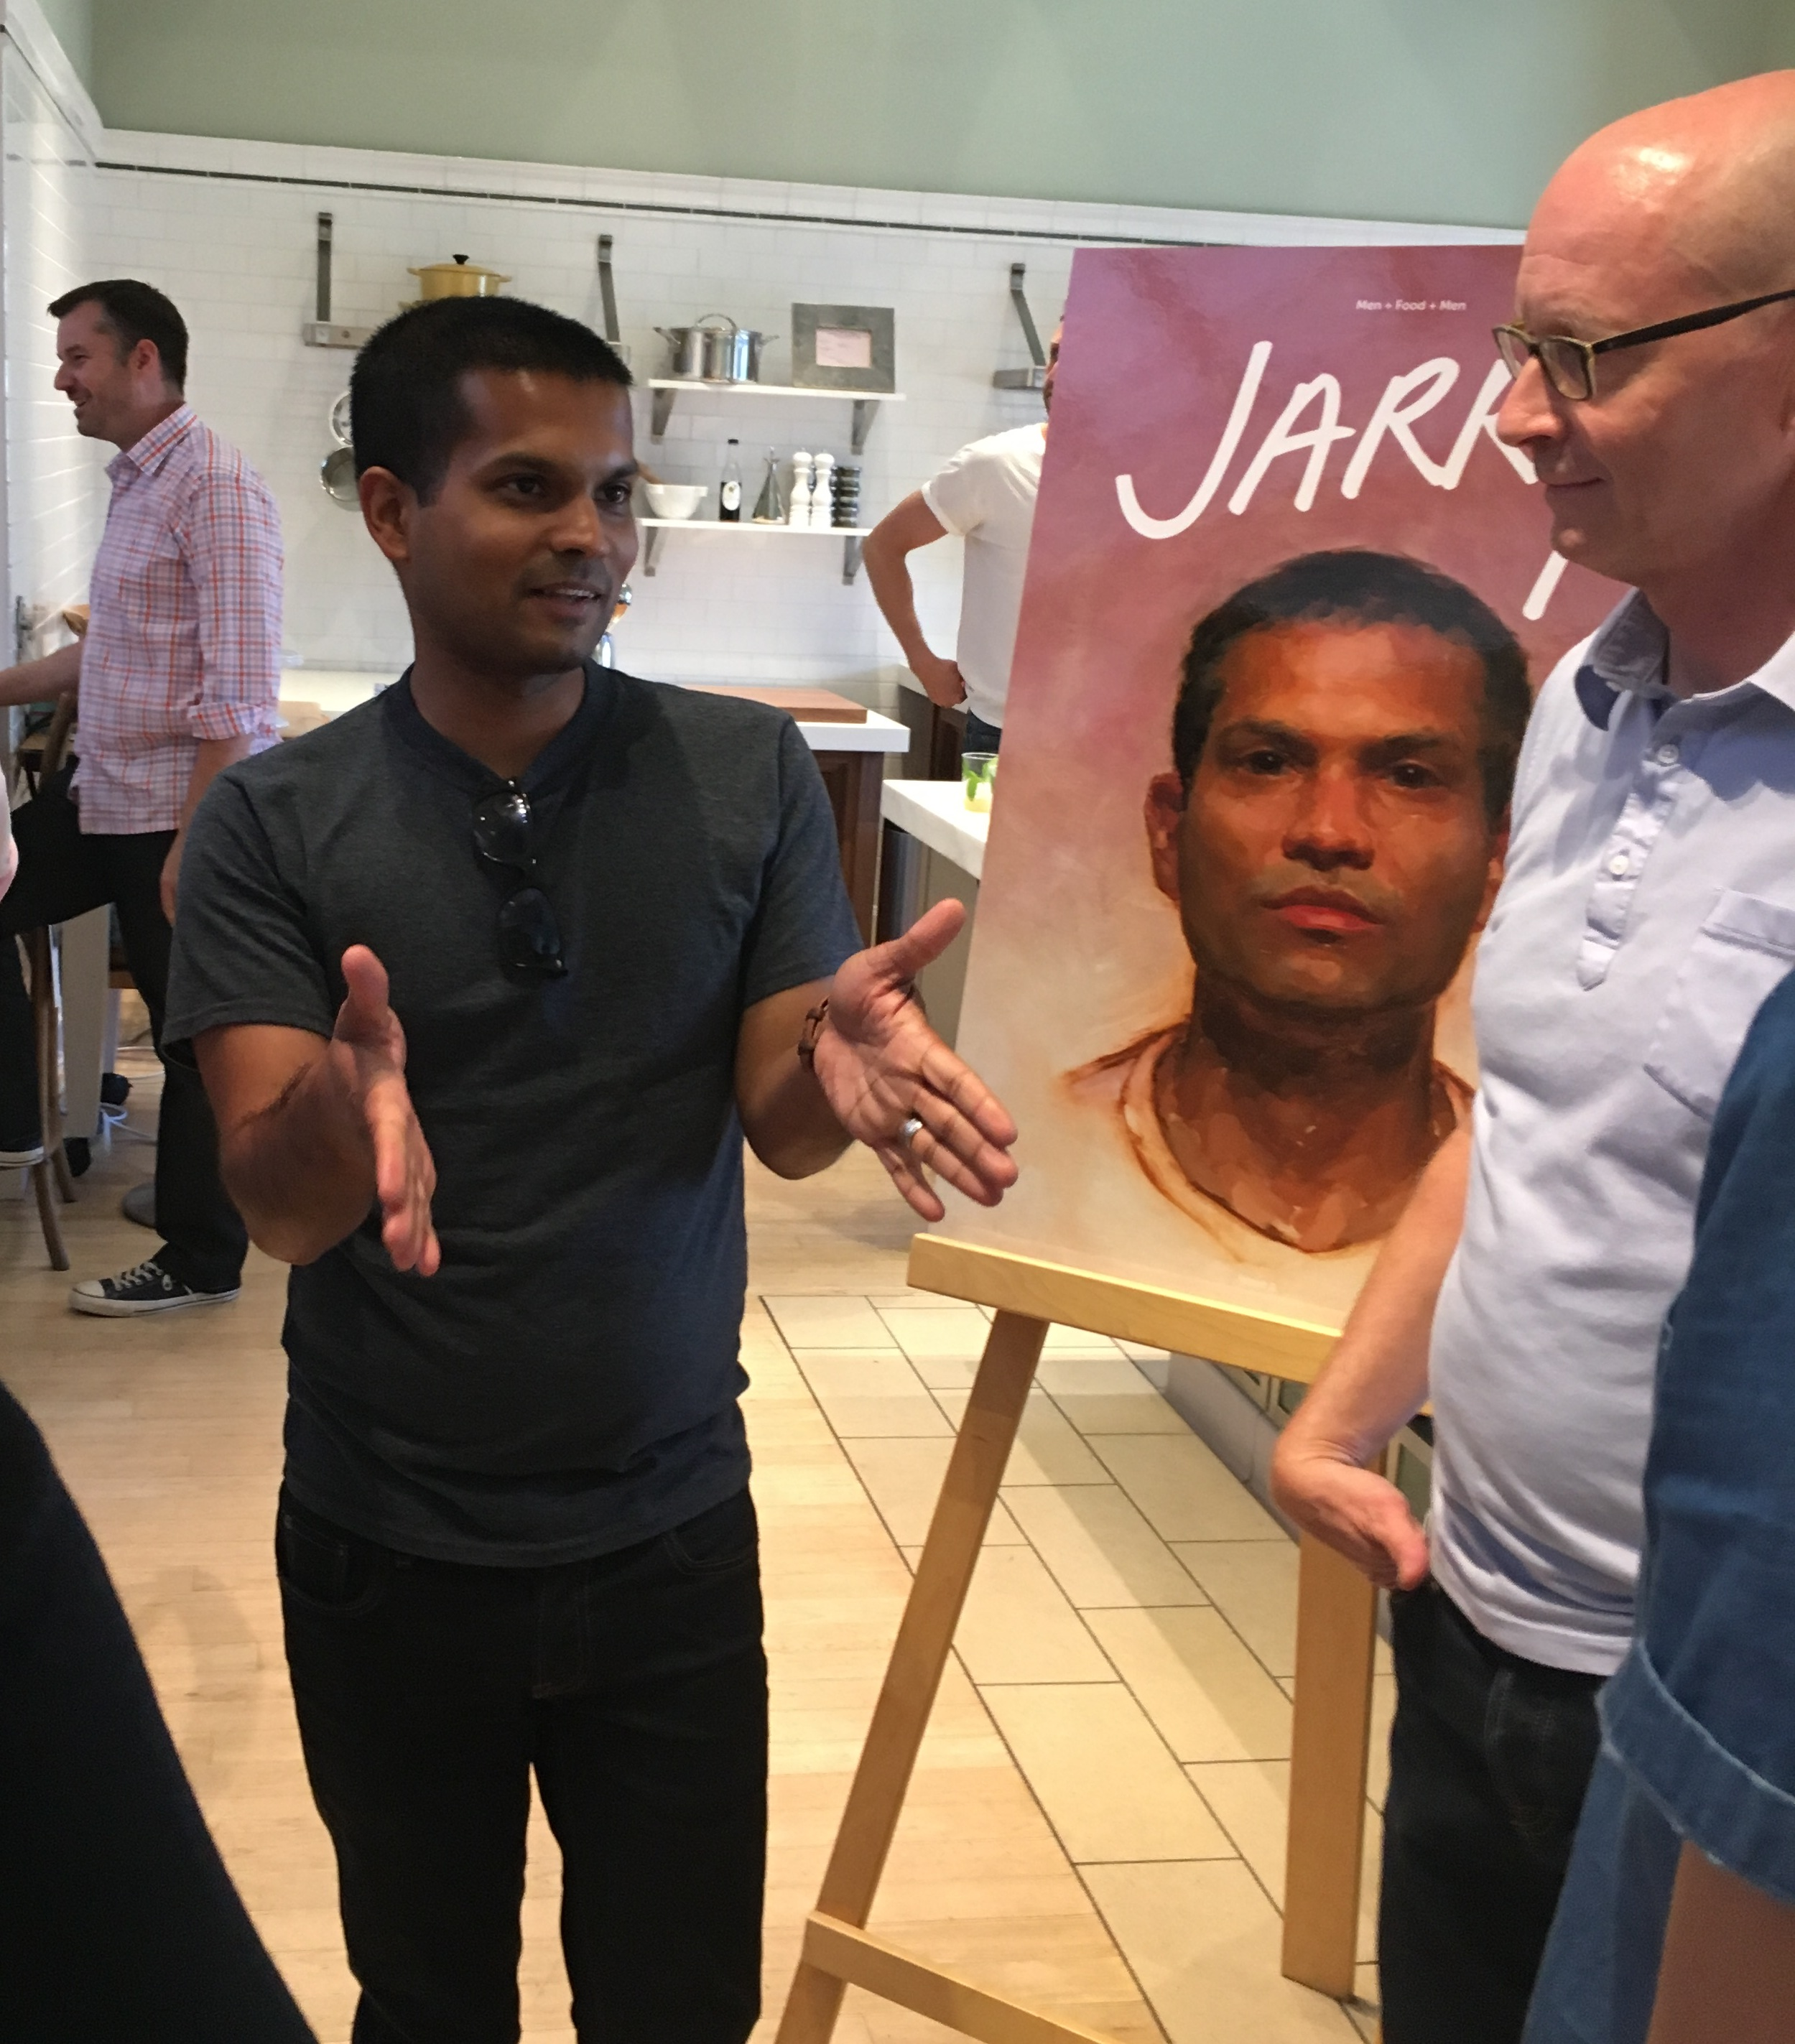 Photographer Nik Sharma and writer John Birdsall, with portrait of Sharma by Patrick Byrnes from Jarry issue 2.